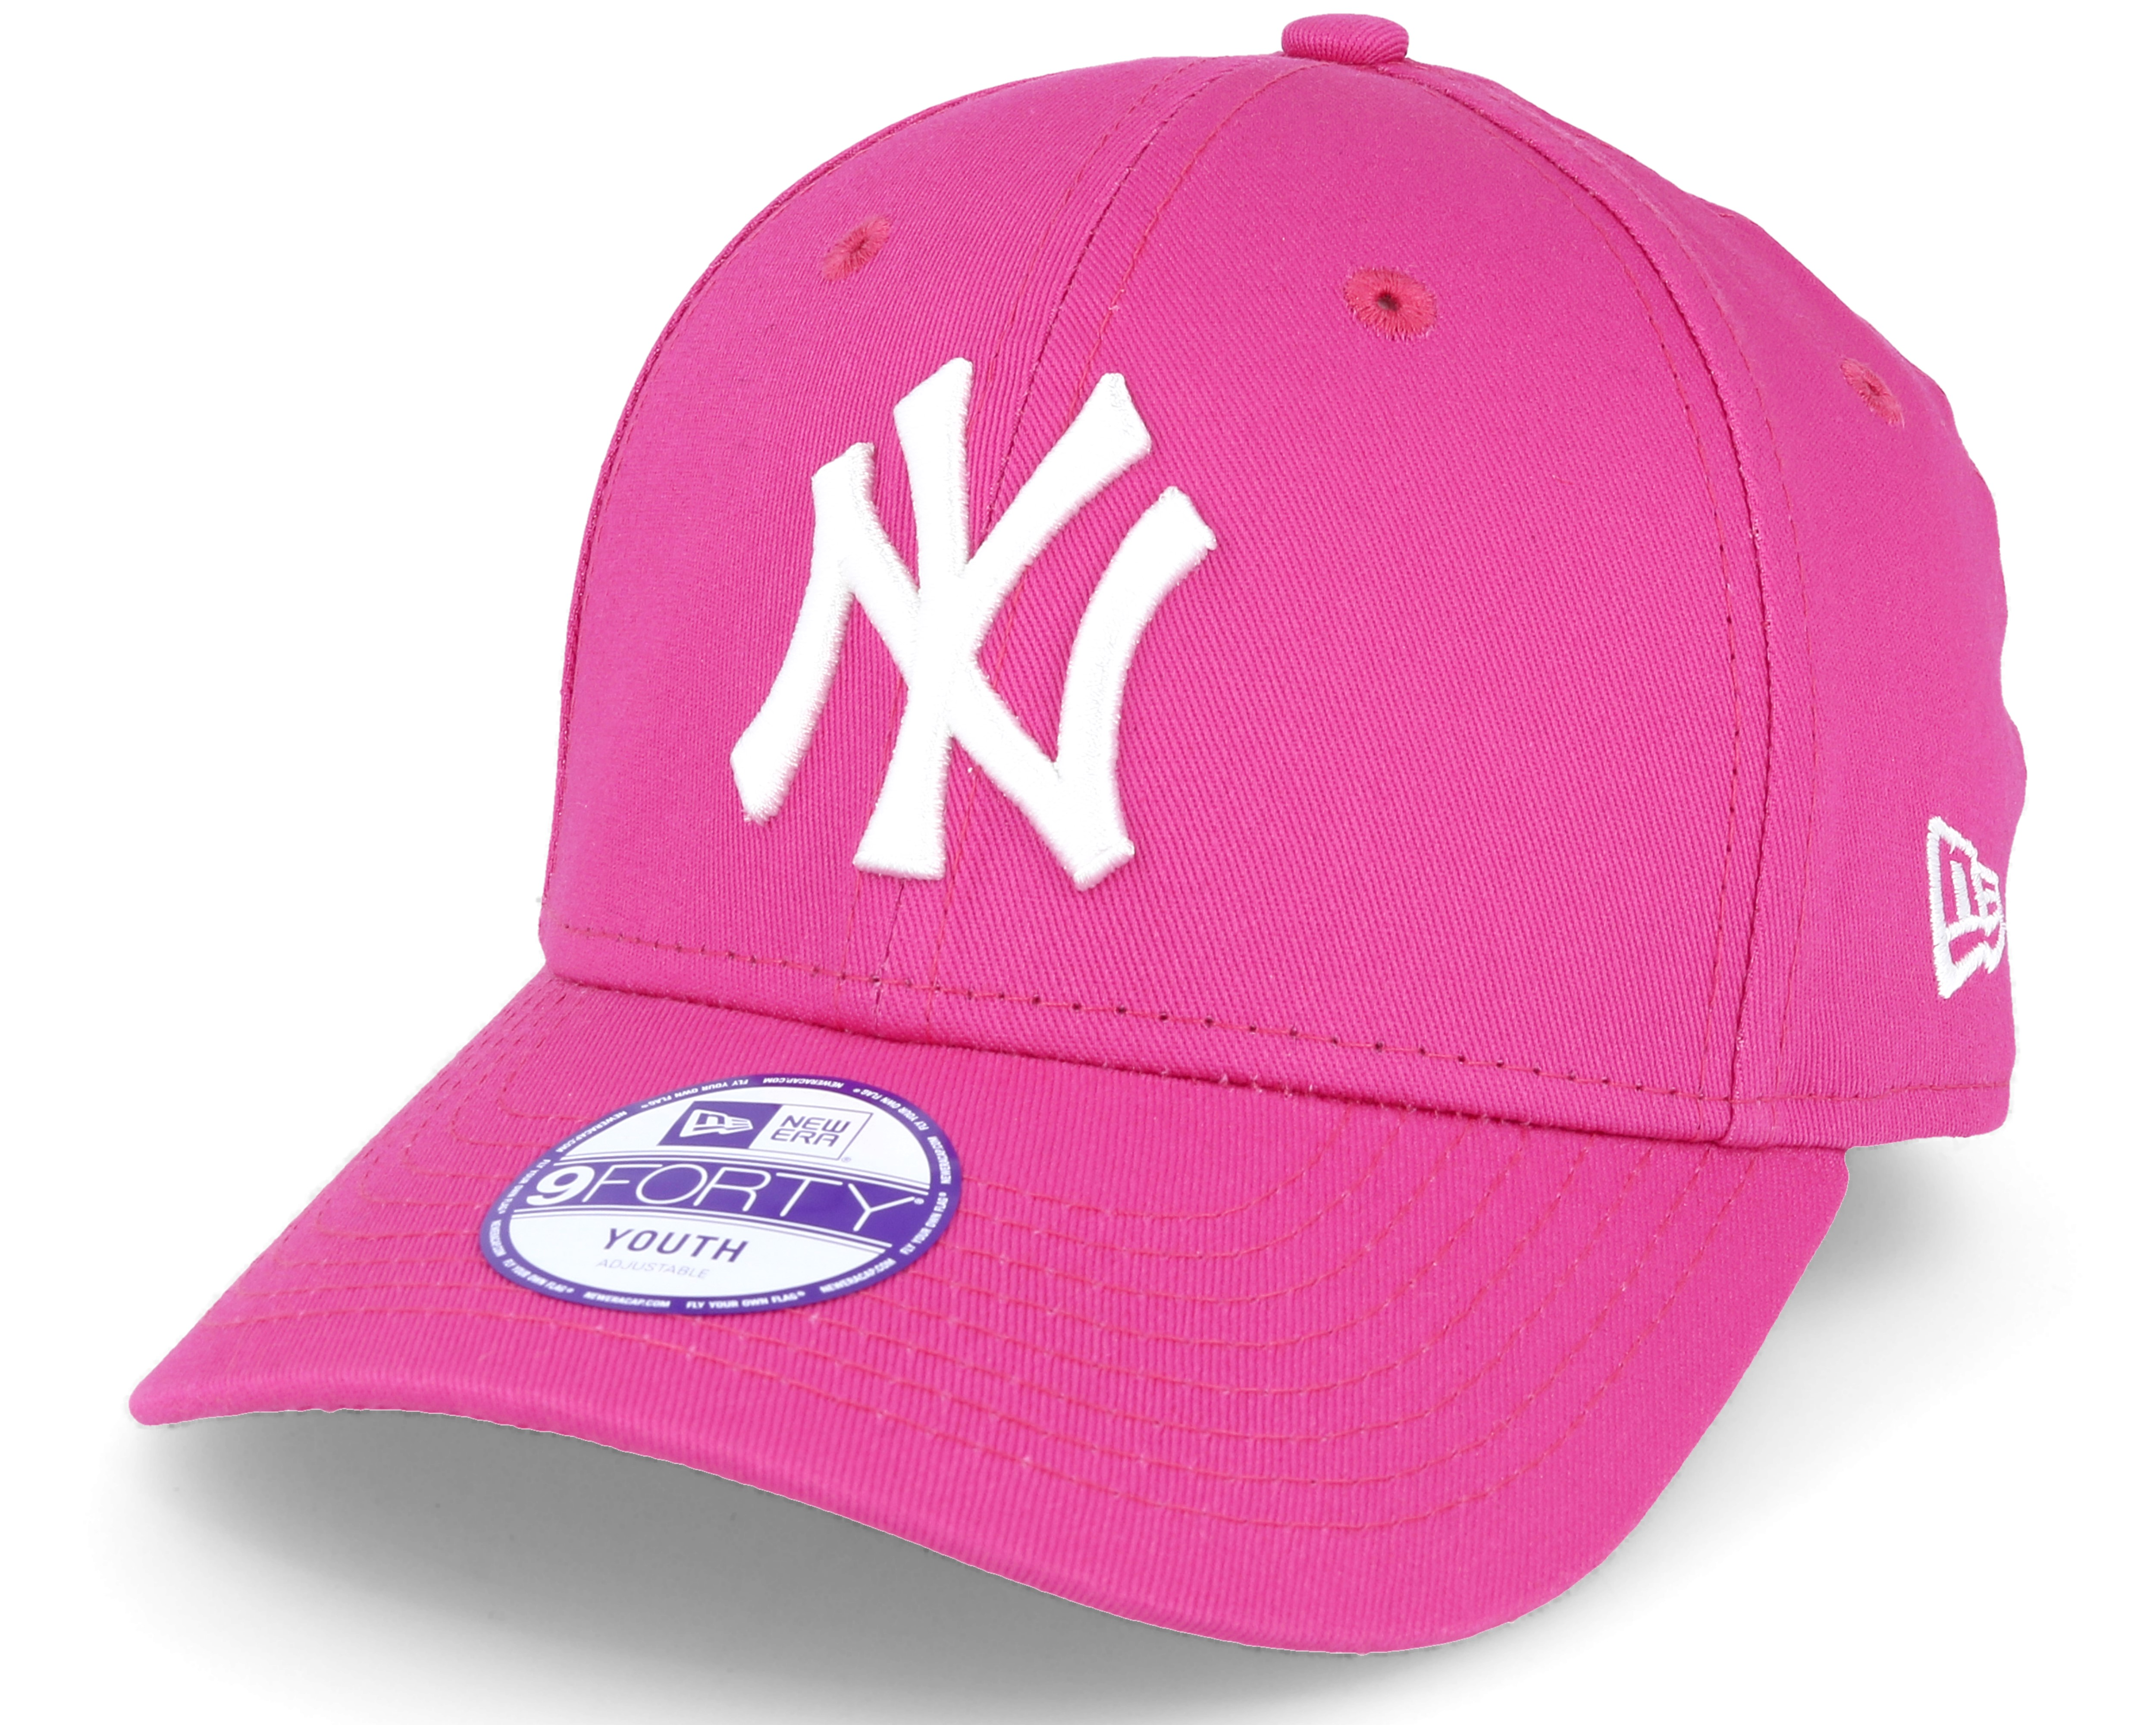 New York Yankees-Caps – RIESENAUSWAHLl an Yankees-Caps - Hatstore f21c3f61a9